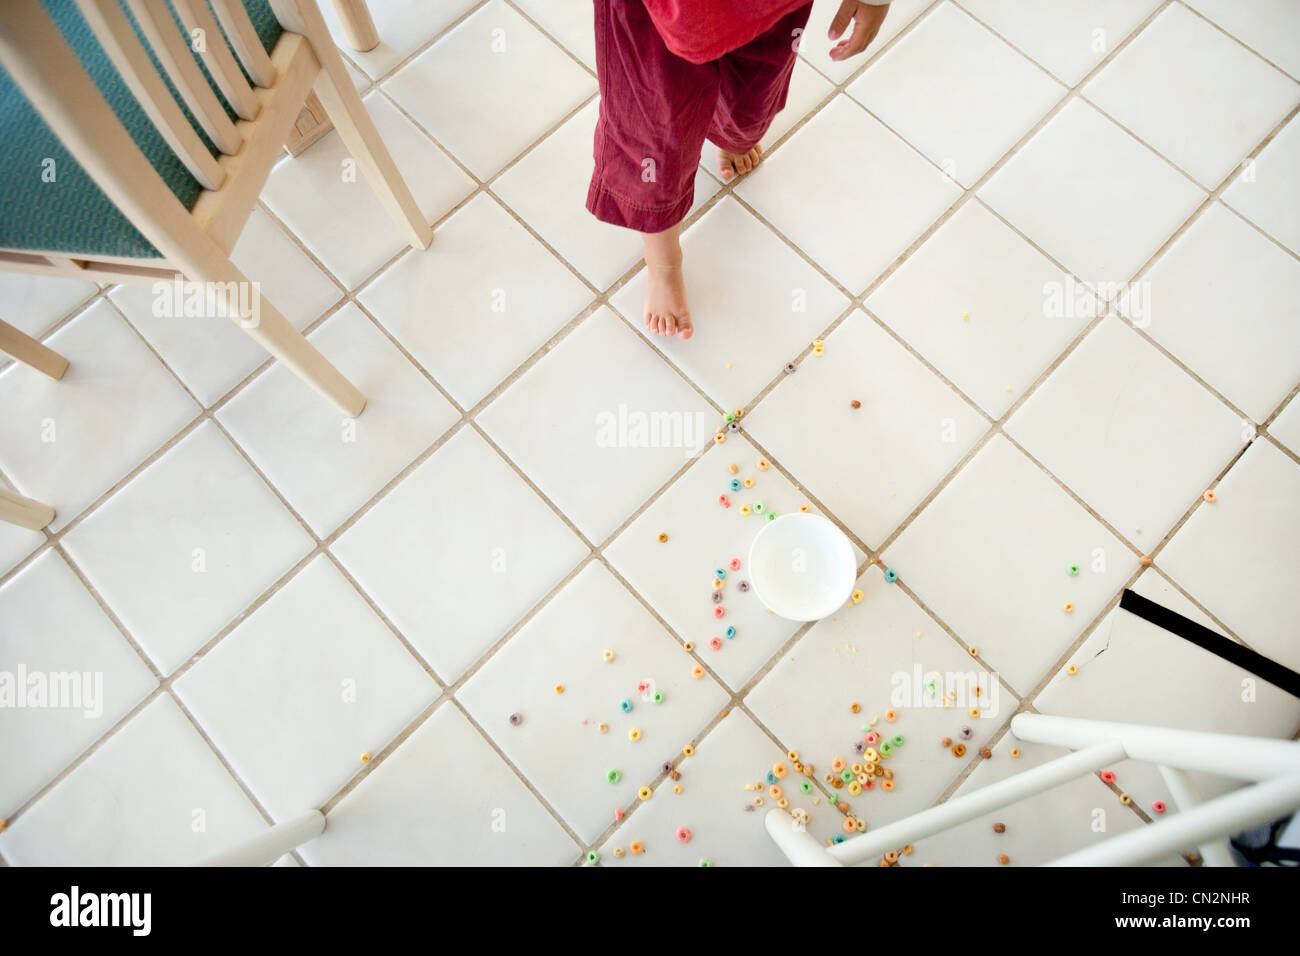 Breakfast cereal spilt on kitchen floor - Stock Image